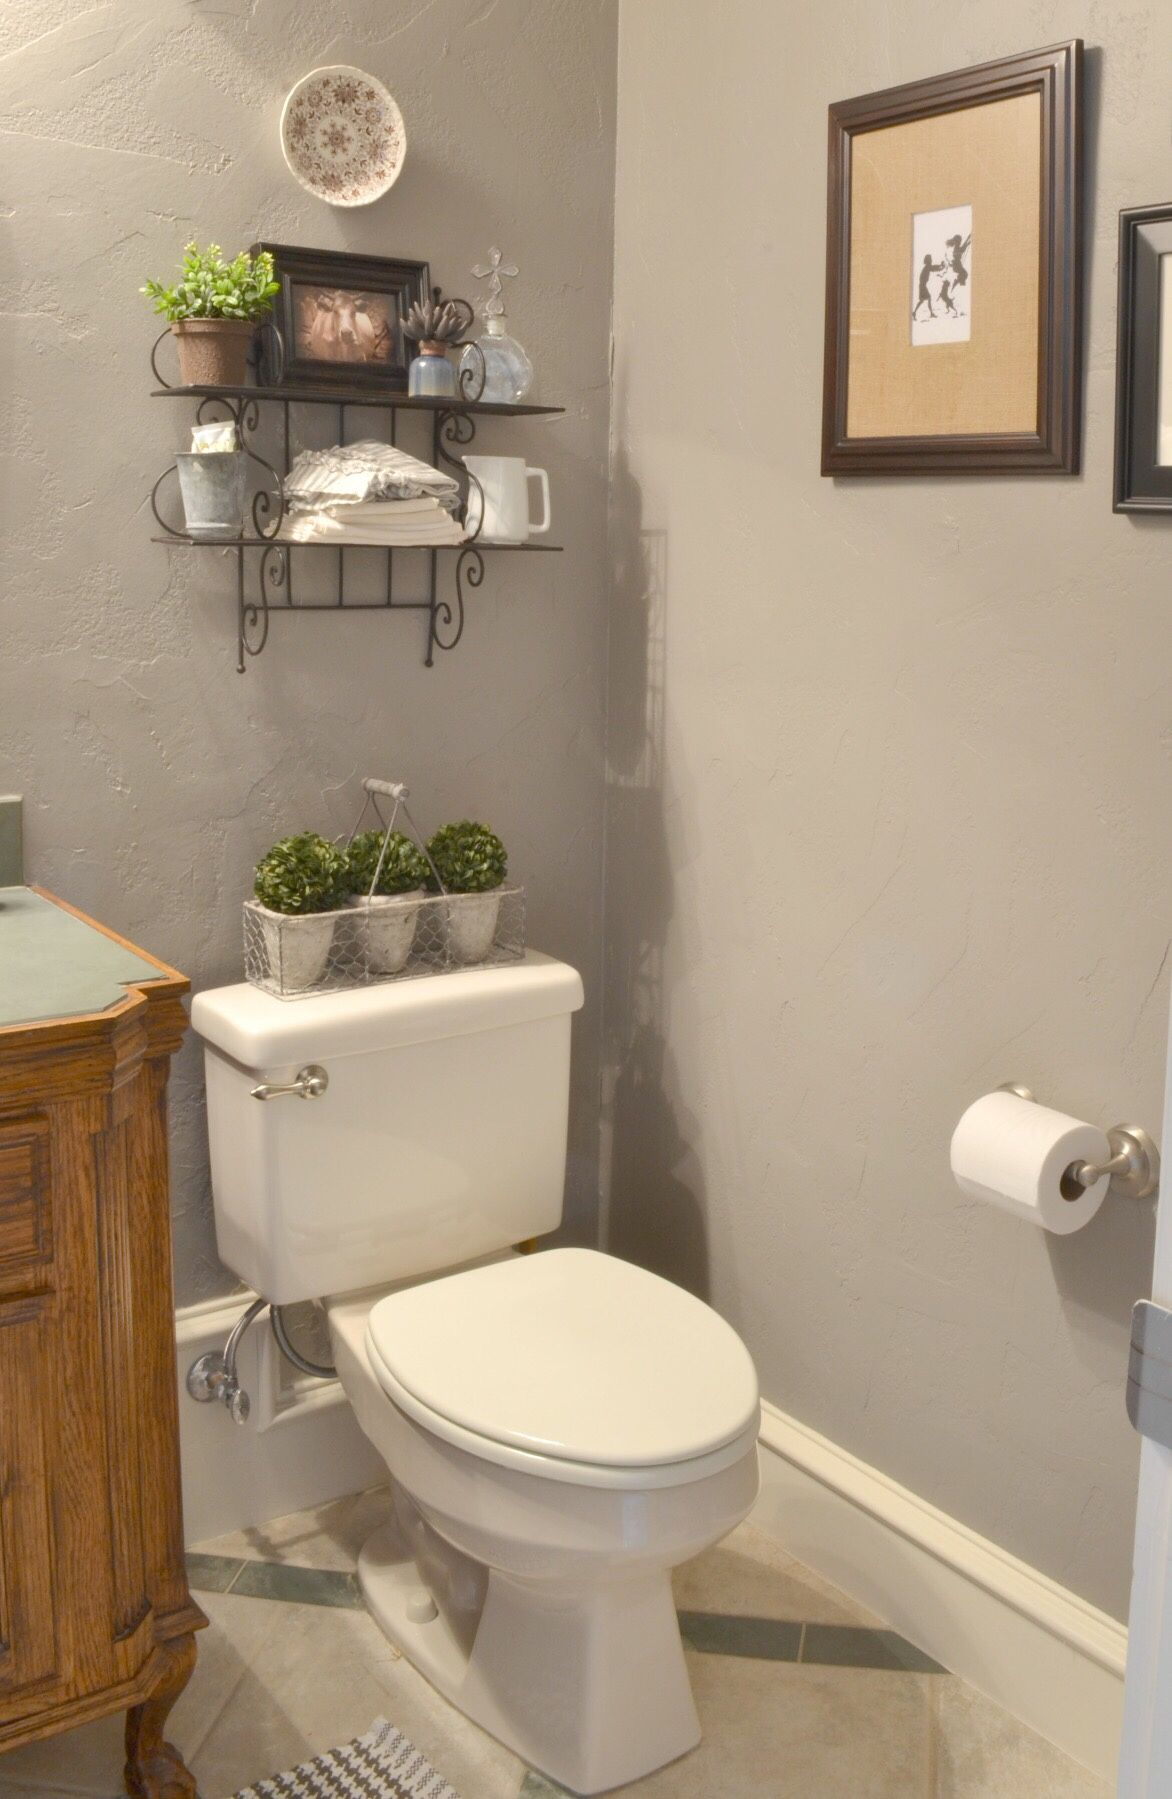 wall color is galveston gray benjamin moore bath on paint colors designers use id=53872